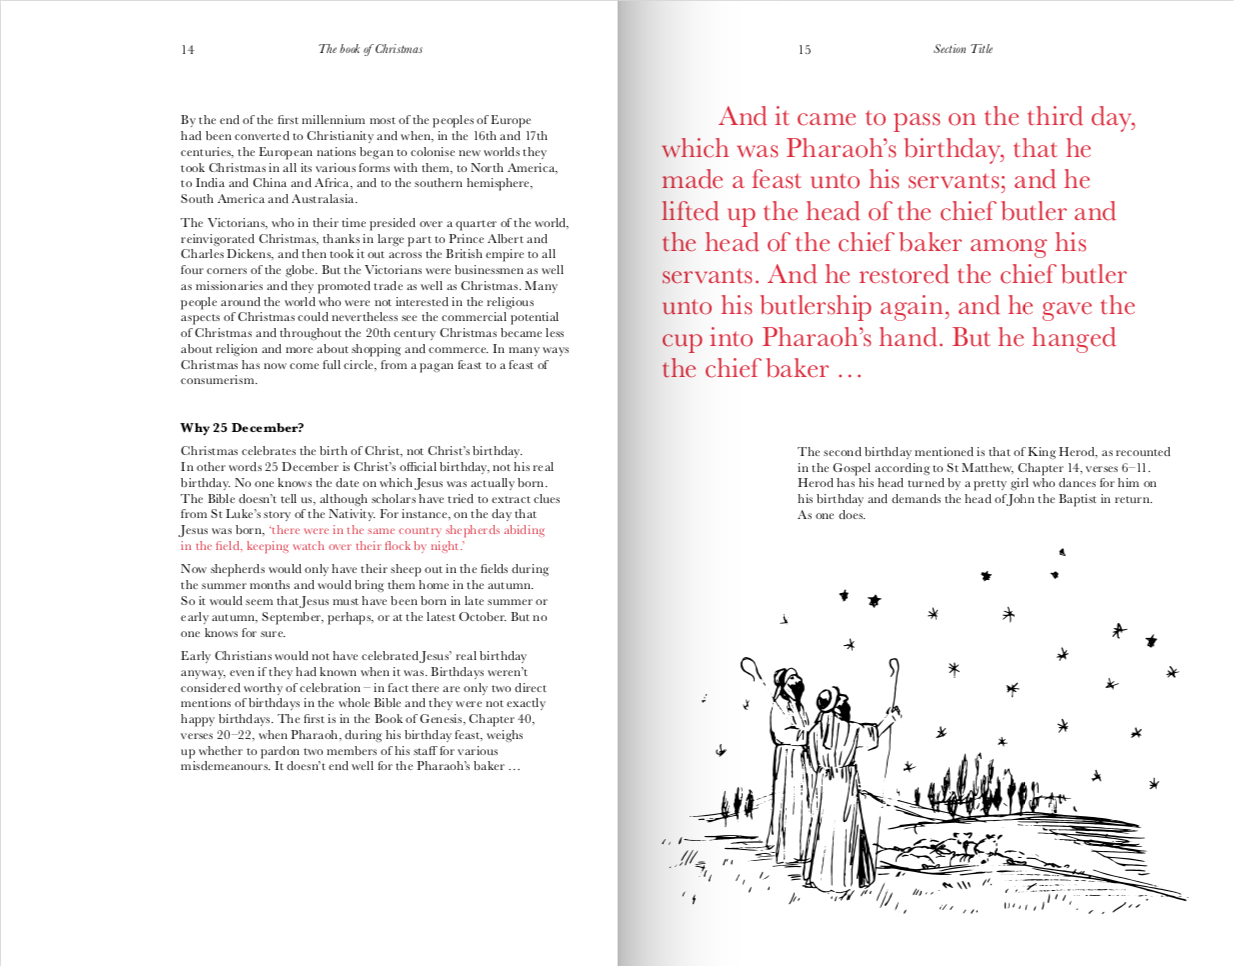 By Christopher Winn from The Book of Christmas: The Hidden Stories Behind Our Festive Traditions  copyright Hardie Grant Books 2018